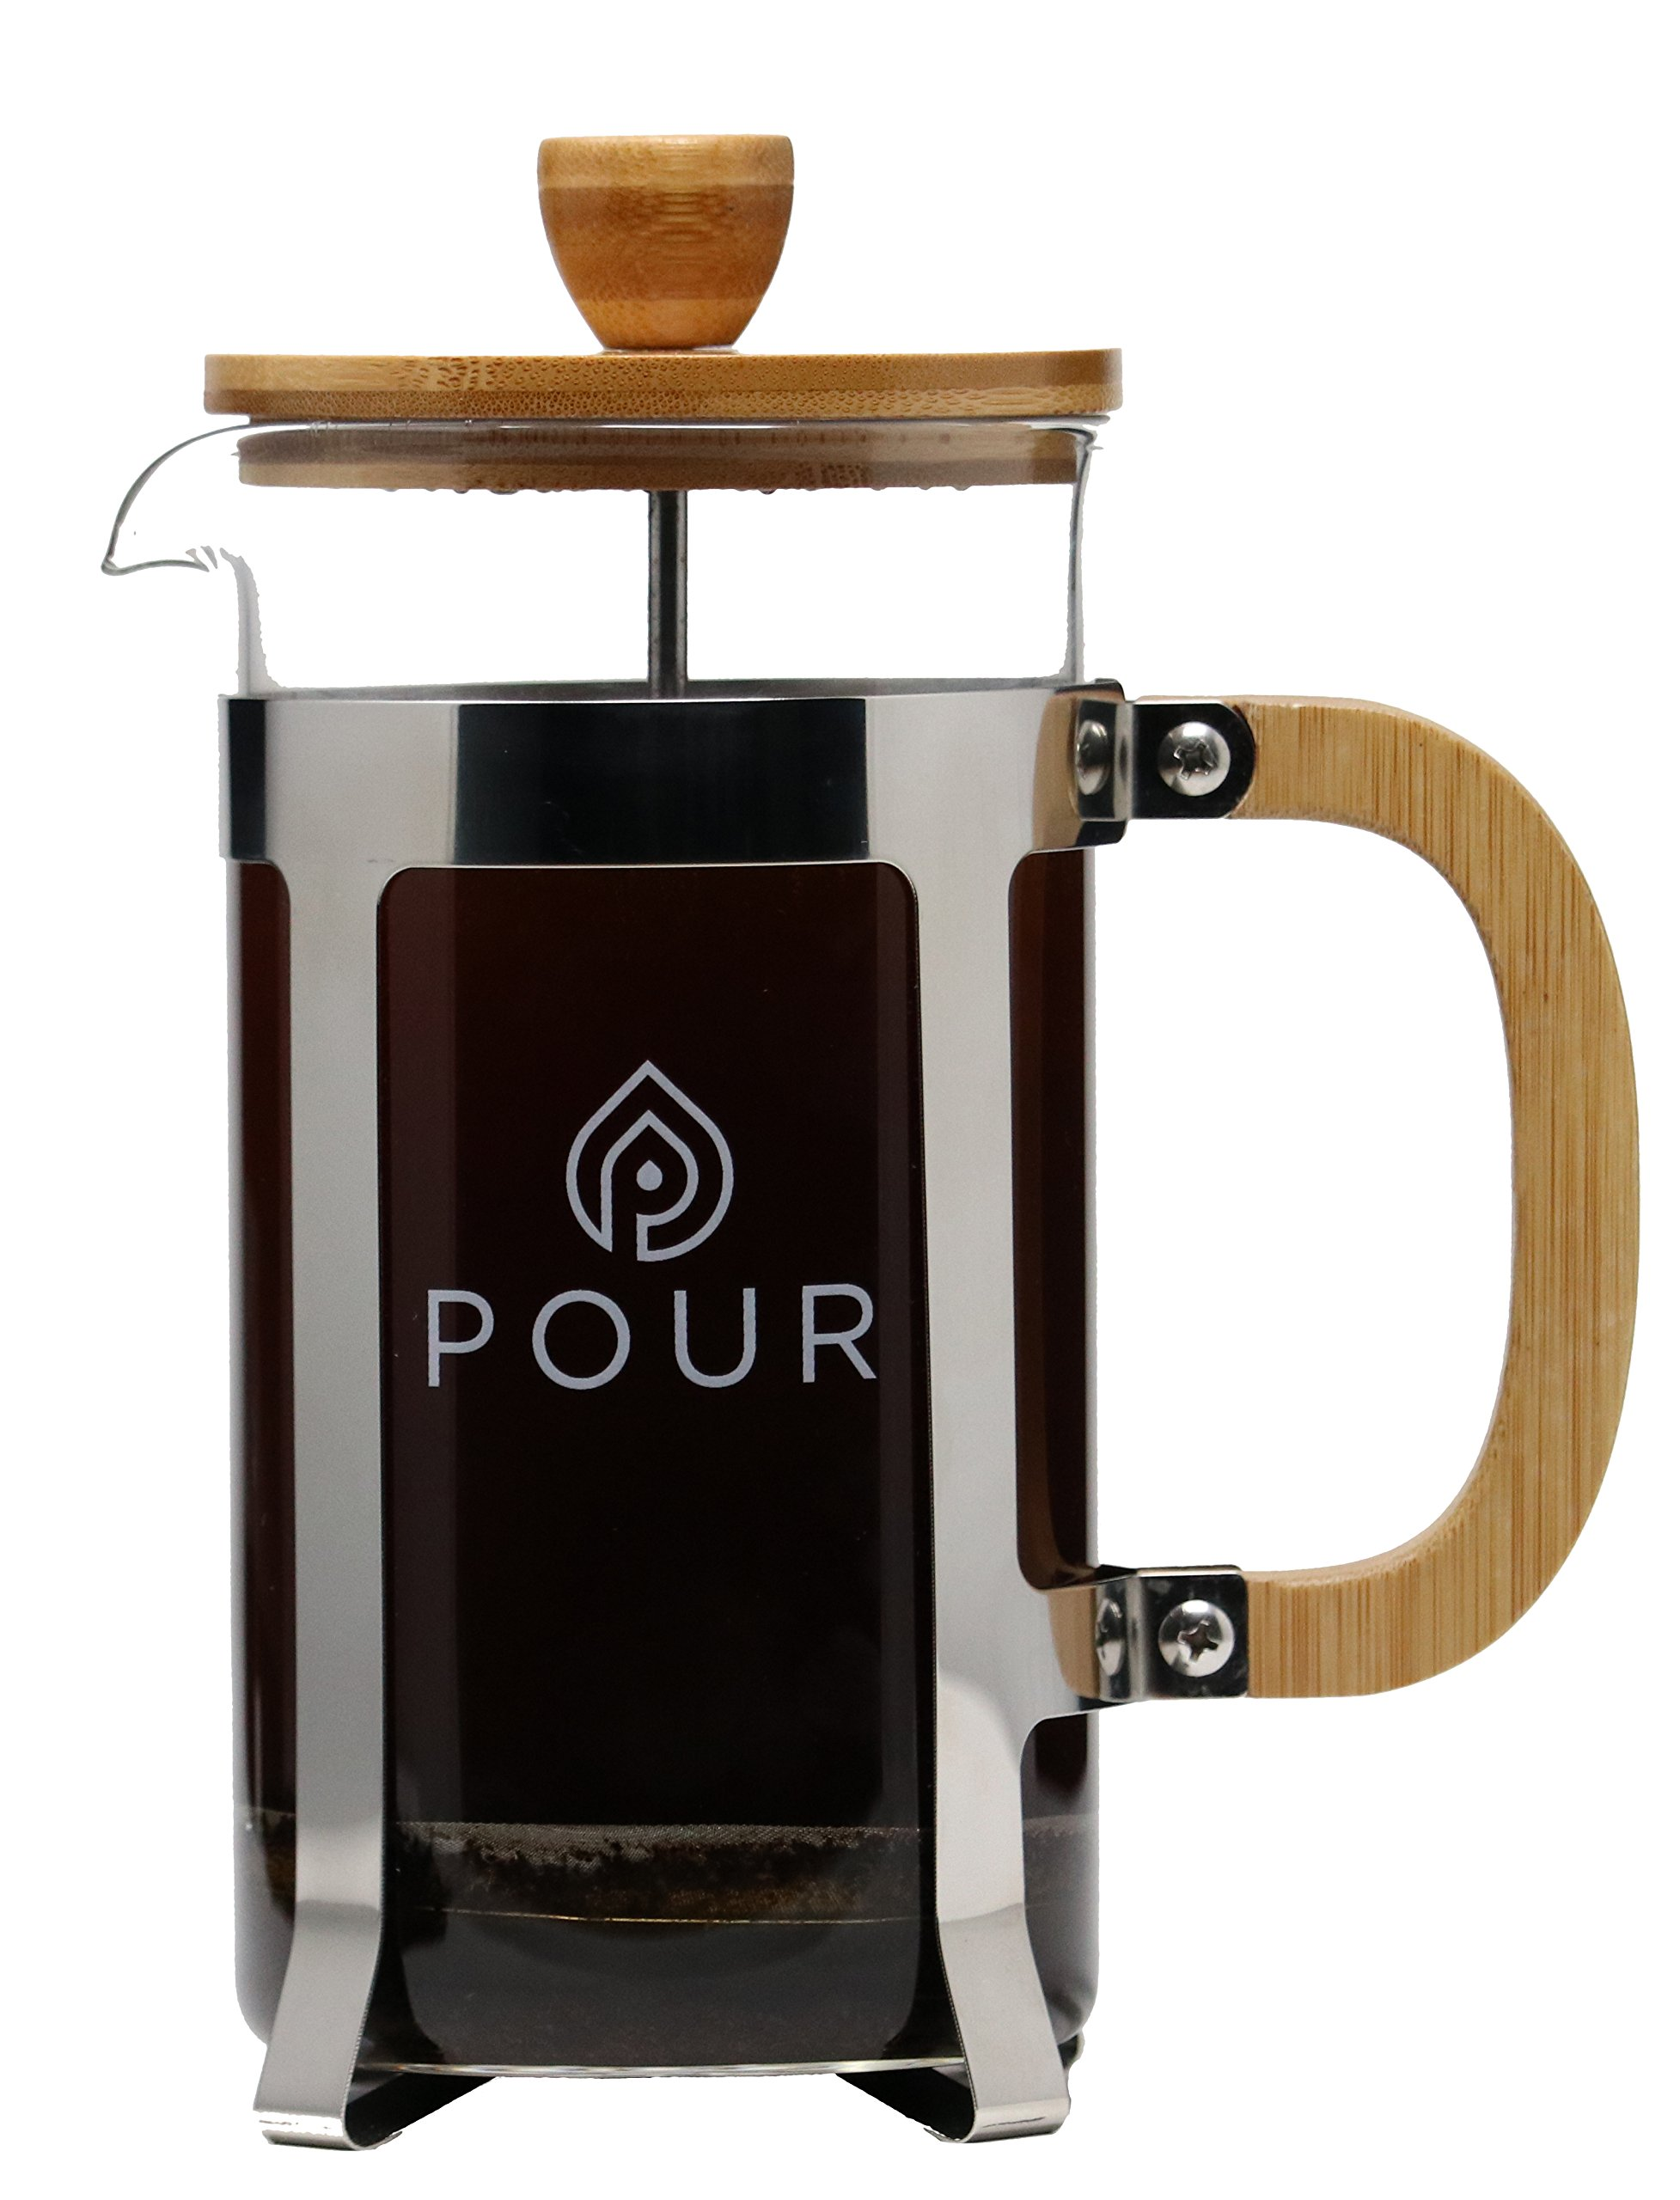 Pour French Press Coffee Maker, Thick Borosilicate Glass, Bamboo Lid, and Stainless Steel Filter, Eco-Friendly Coffee Brewing – Dishwasher Safe - for Grounds and Loose Tea 36oz./1000M